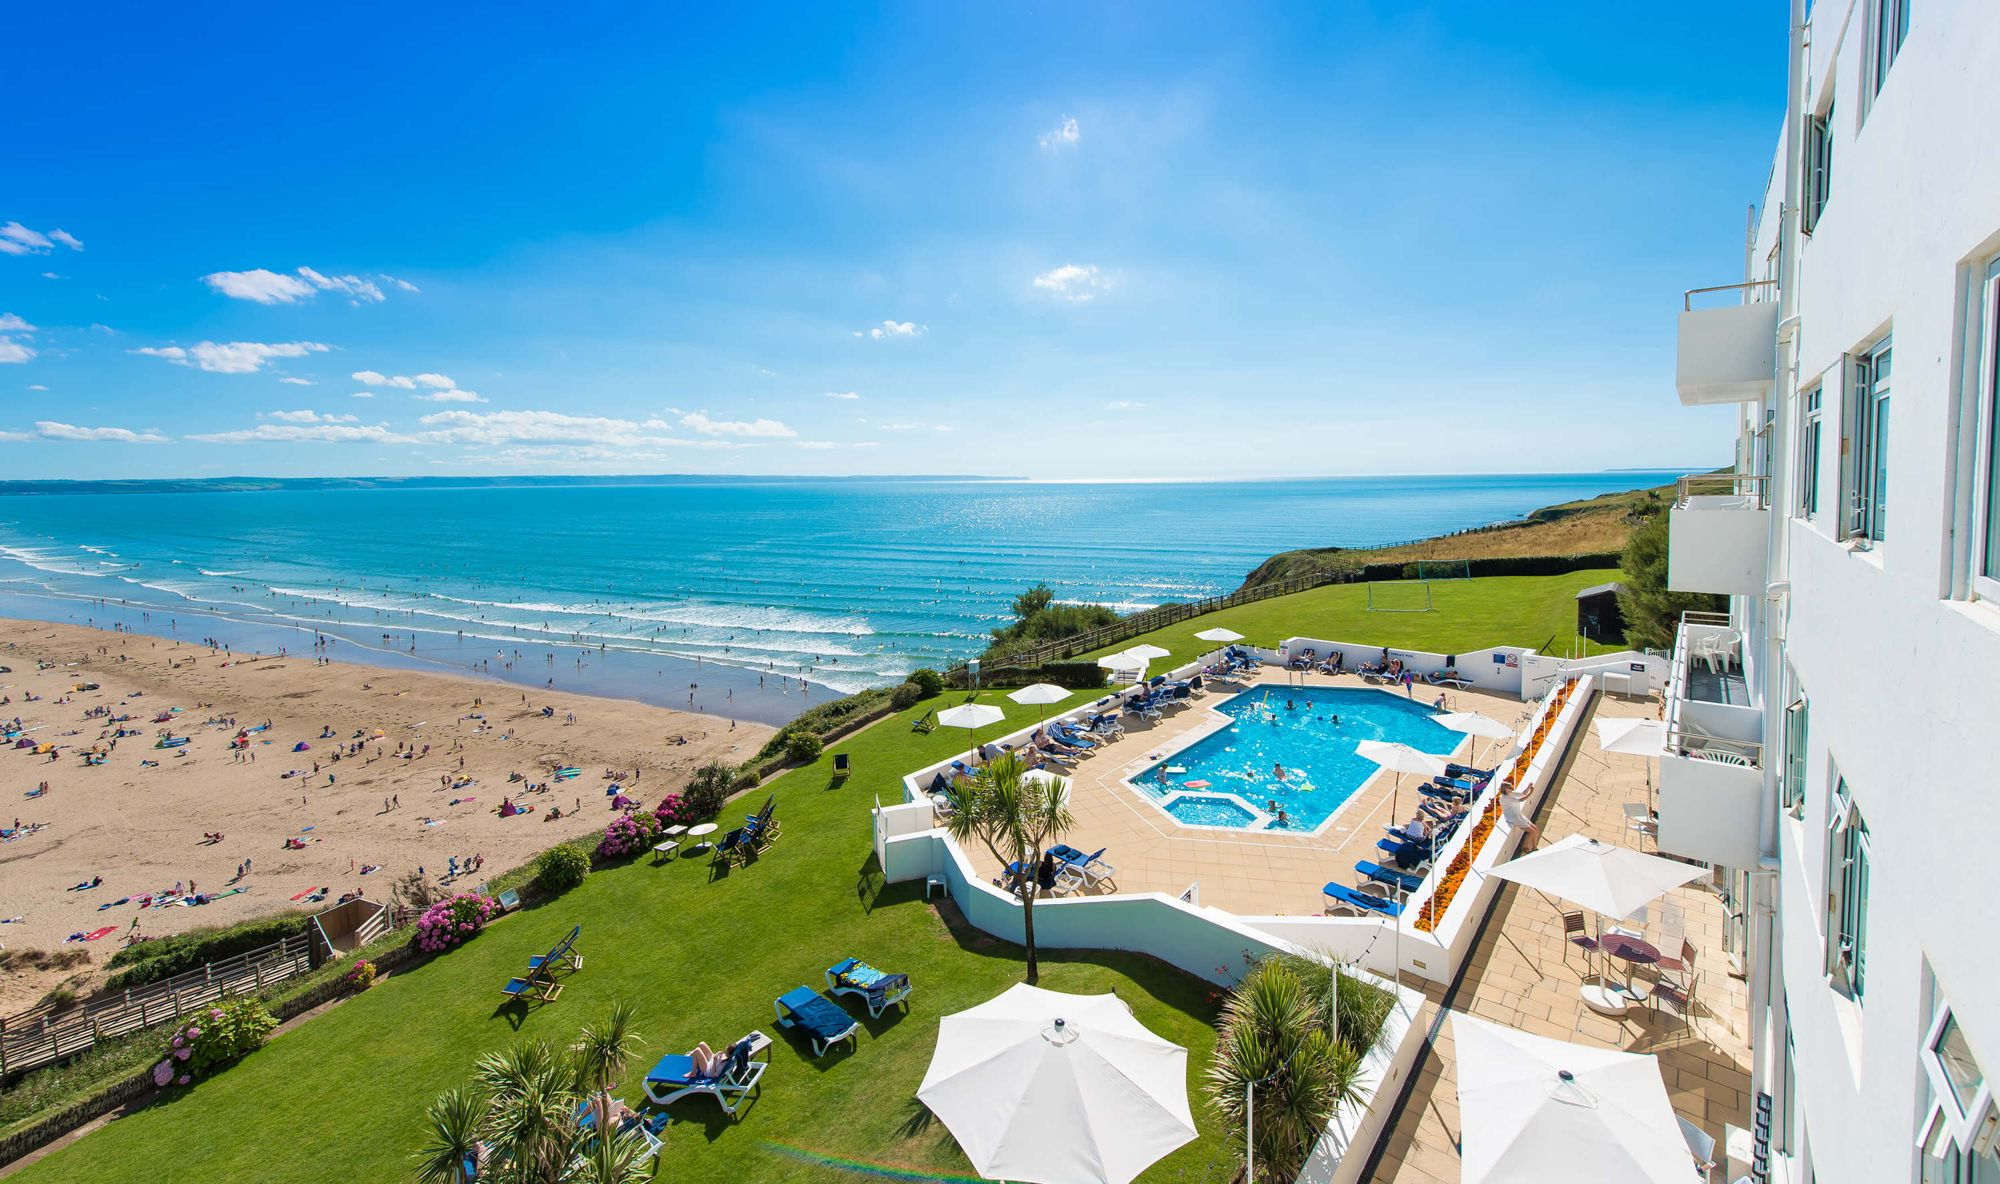 Hotels in Croyde holidays at Cool Places